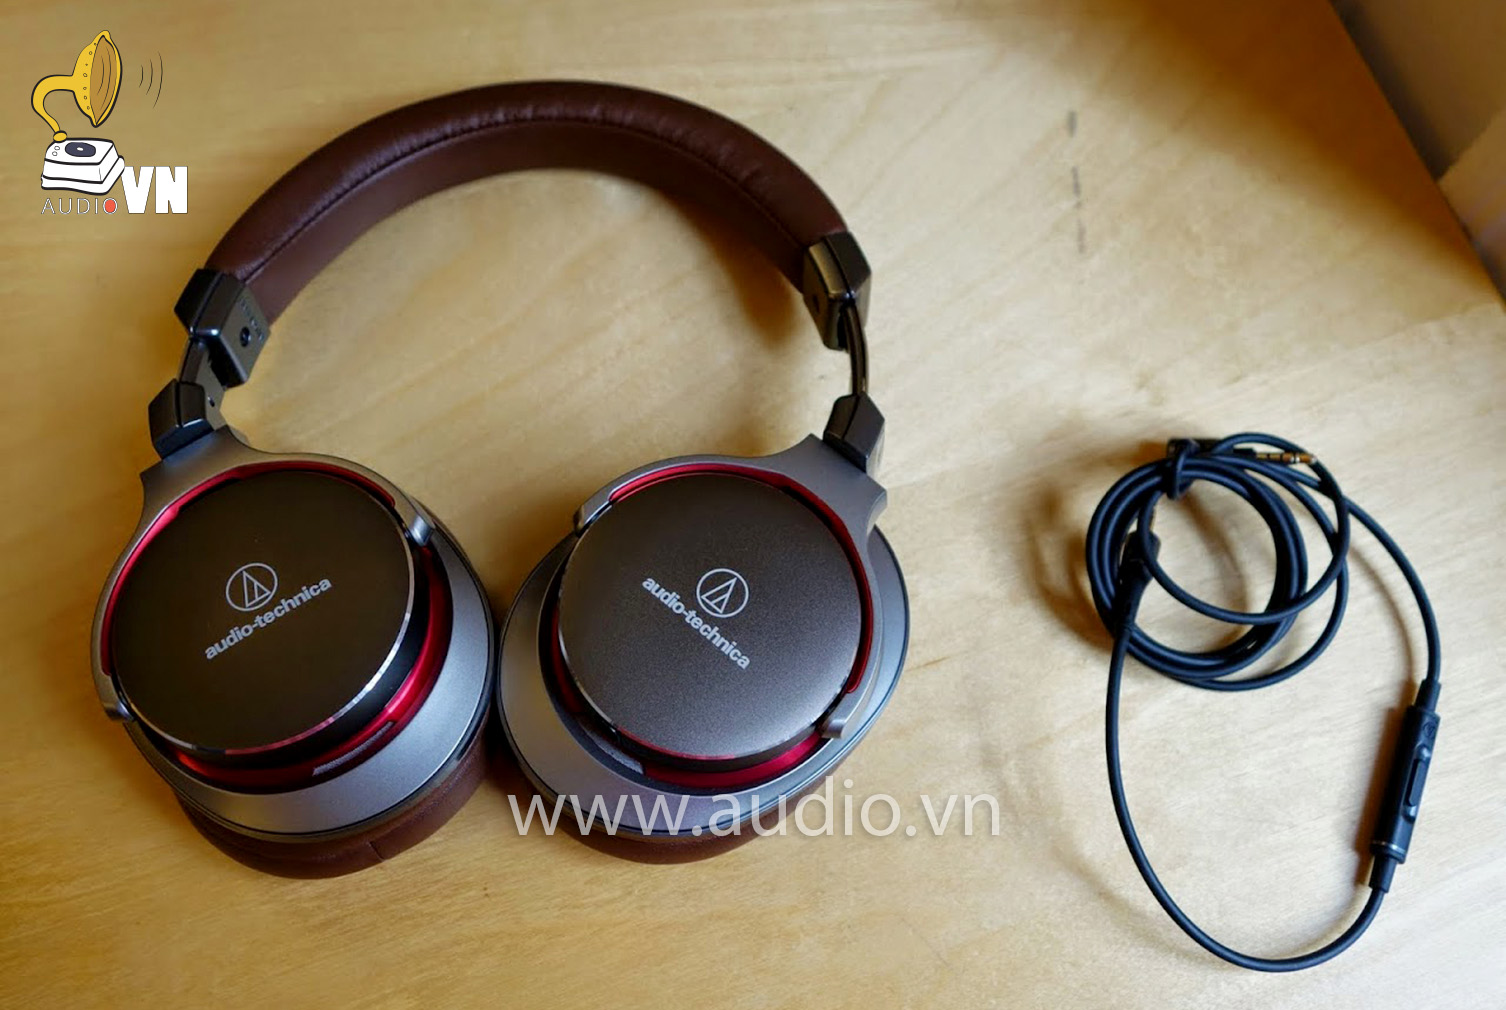 audio technica ath-mrs7